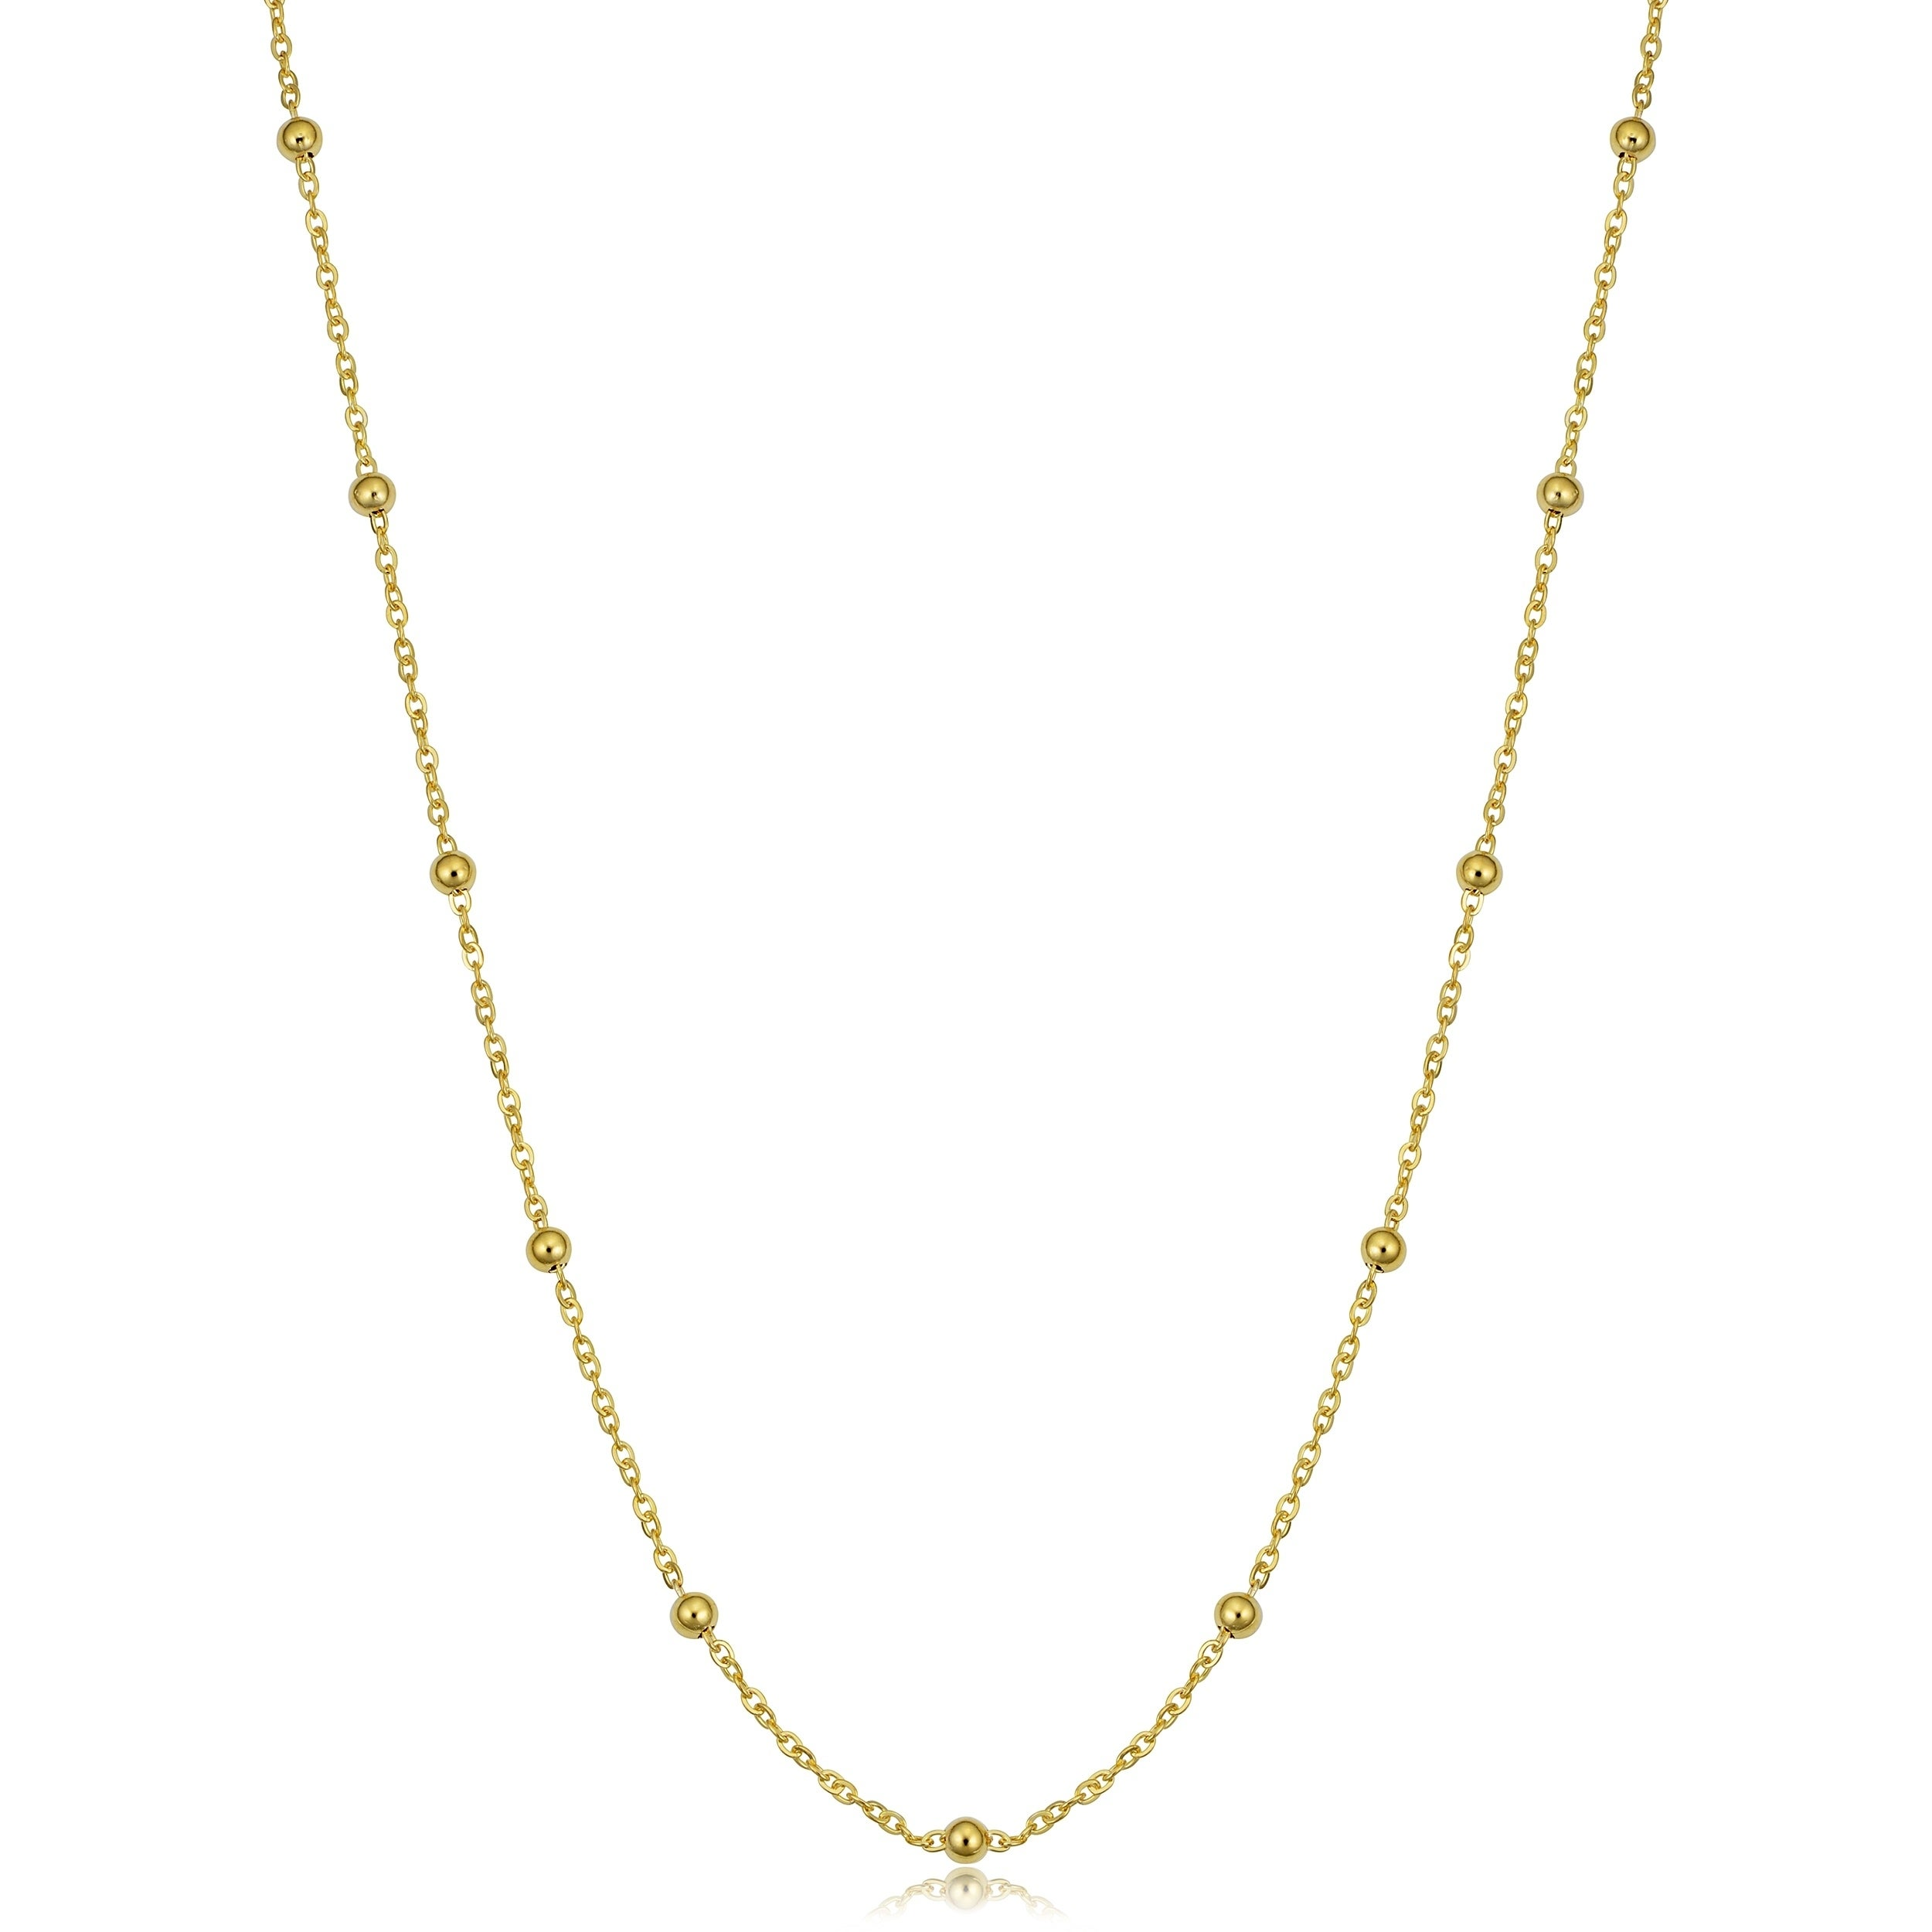 Shop 14k Yellow Gold Italian Beads Station Necklace On Sale Overstock 23069066